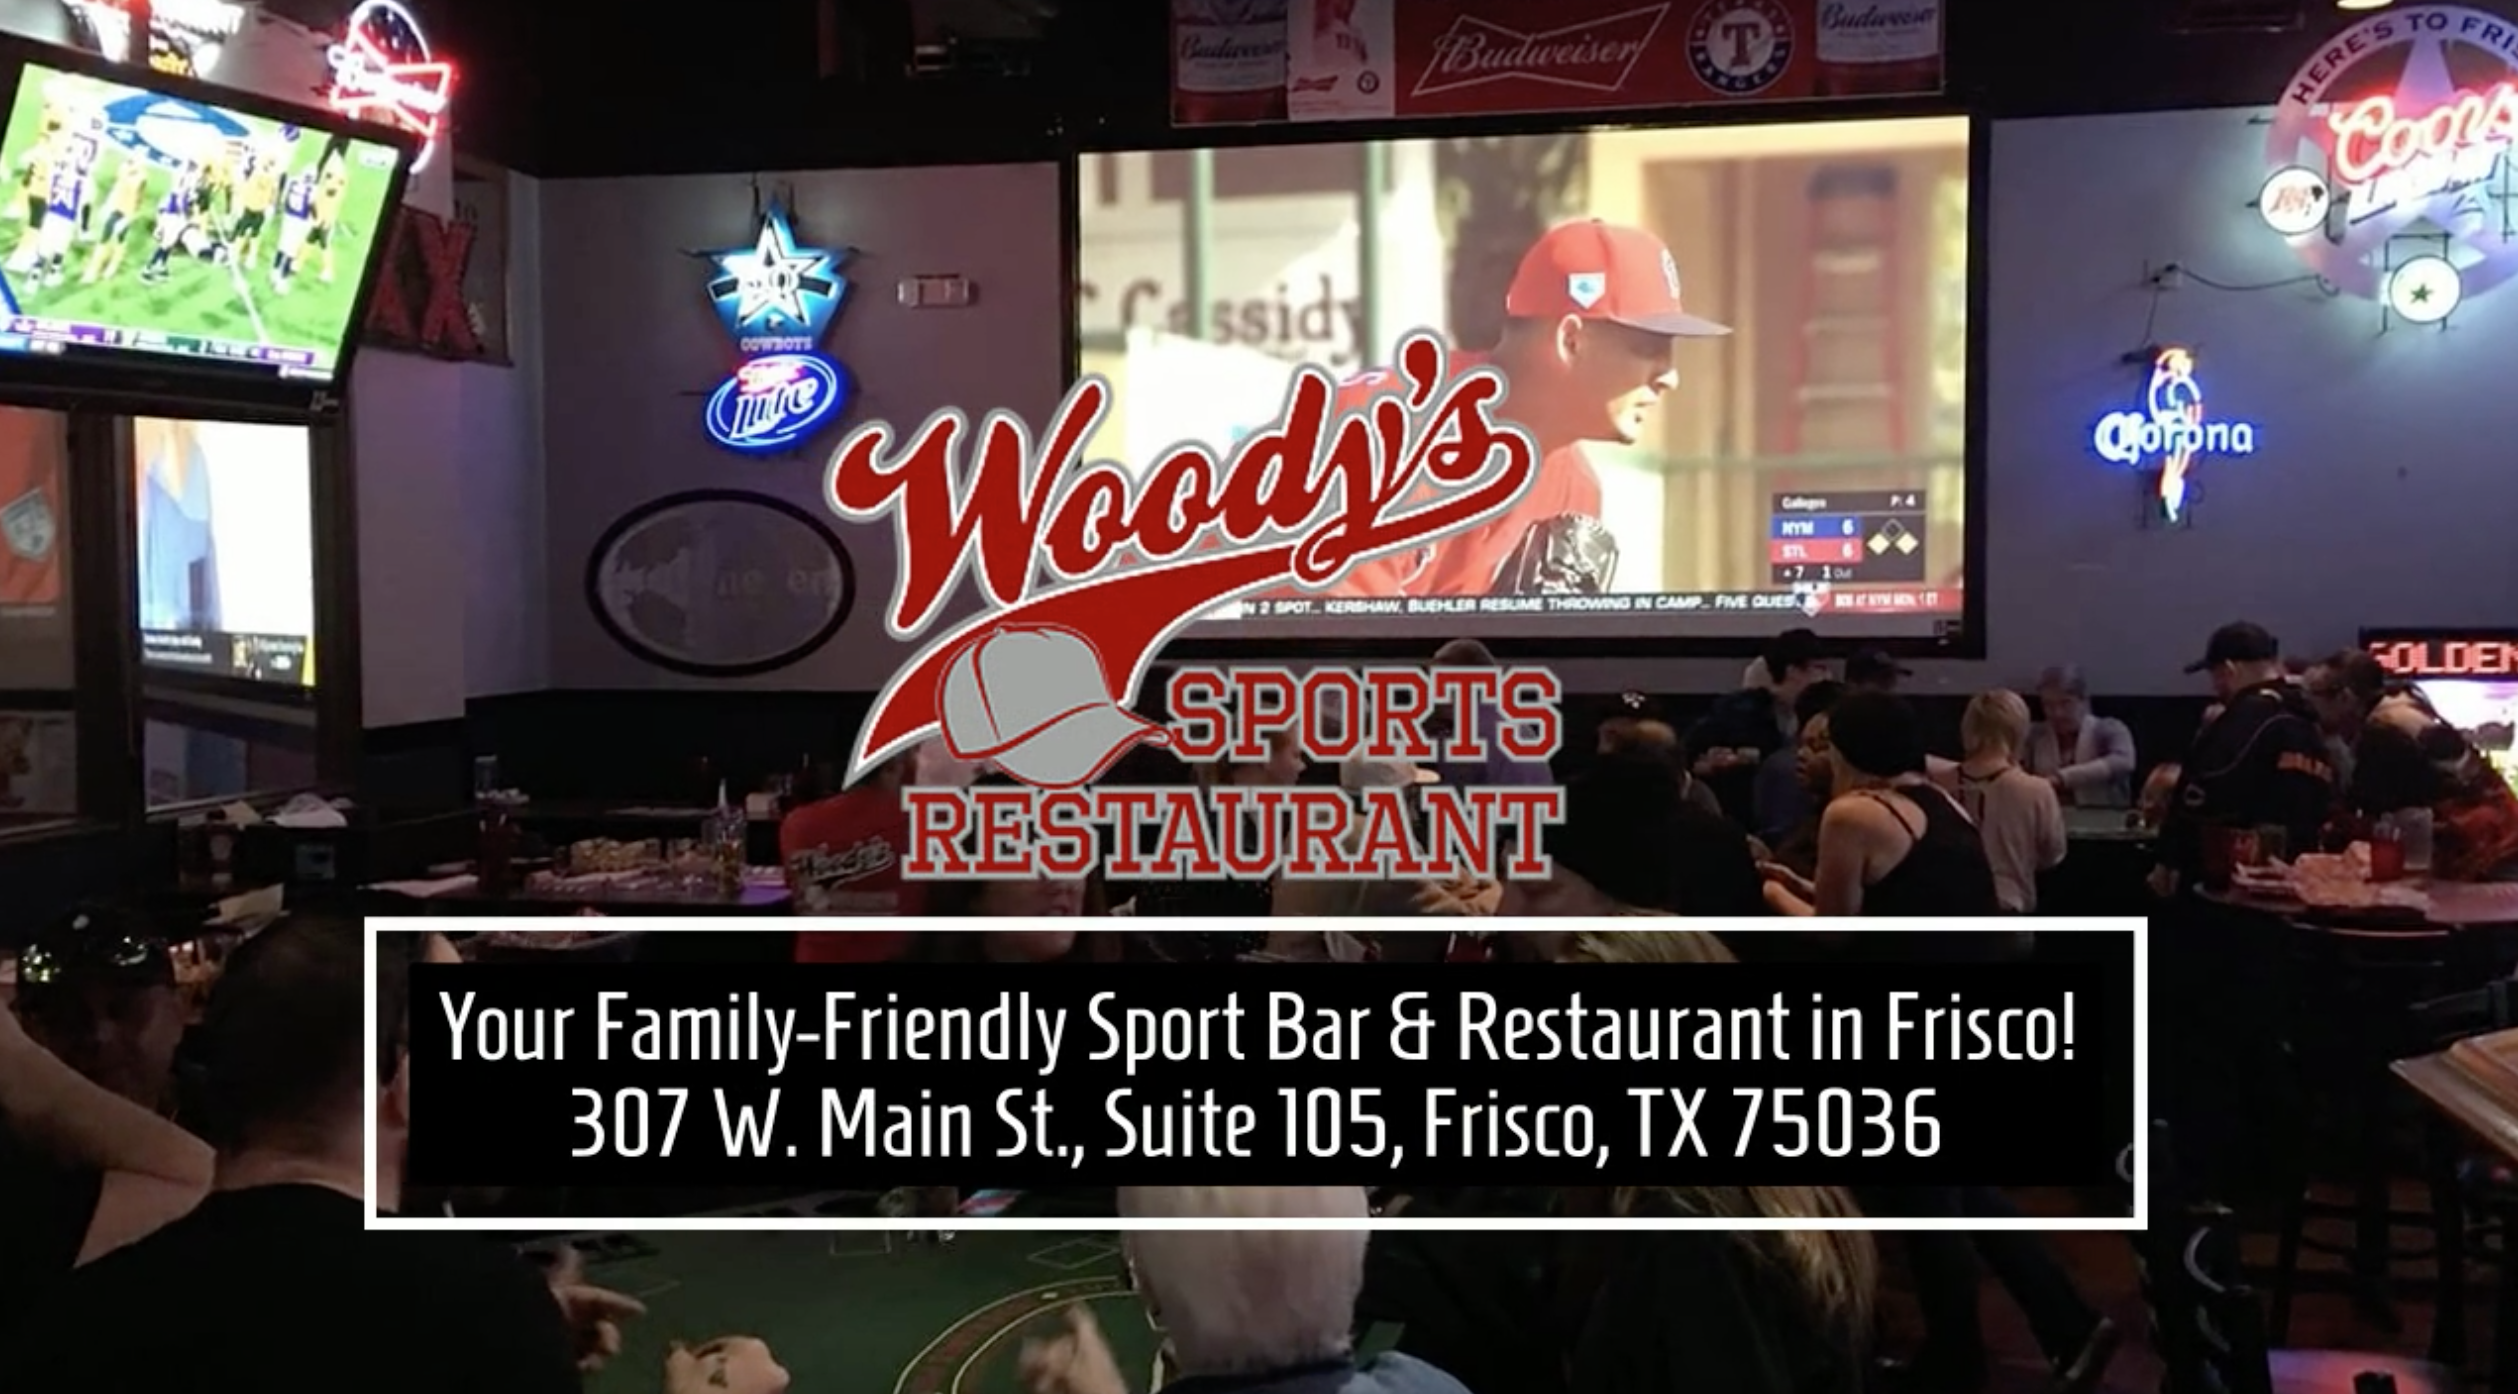 Woody's Sports Restaurant